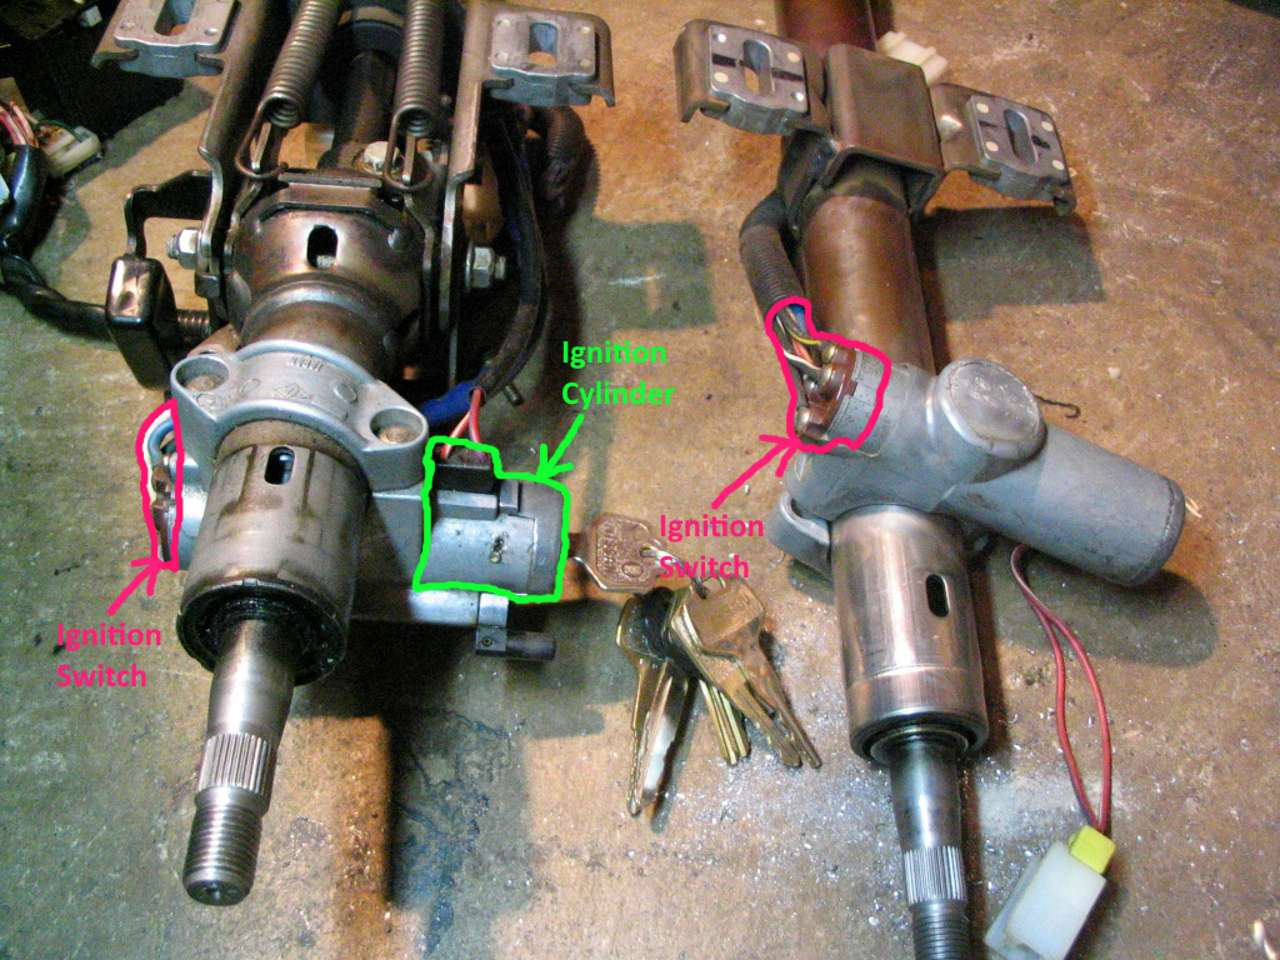 5 Ignition Switch Problems and How to Fix Them